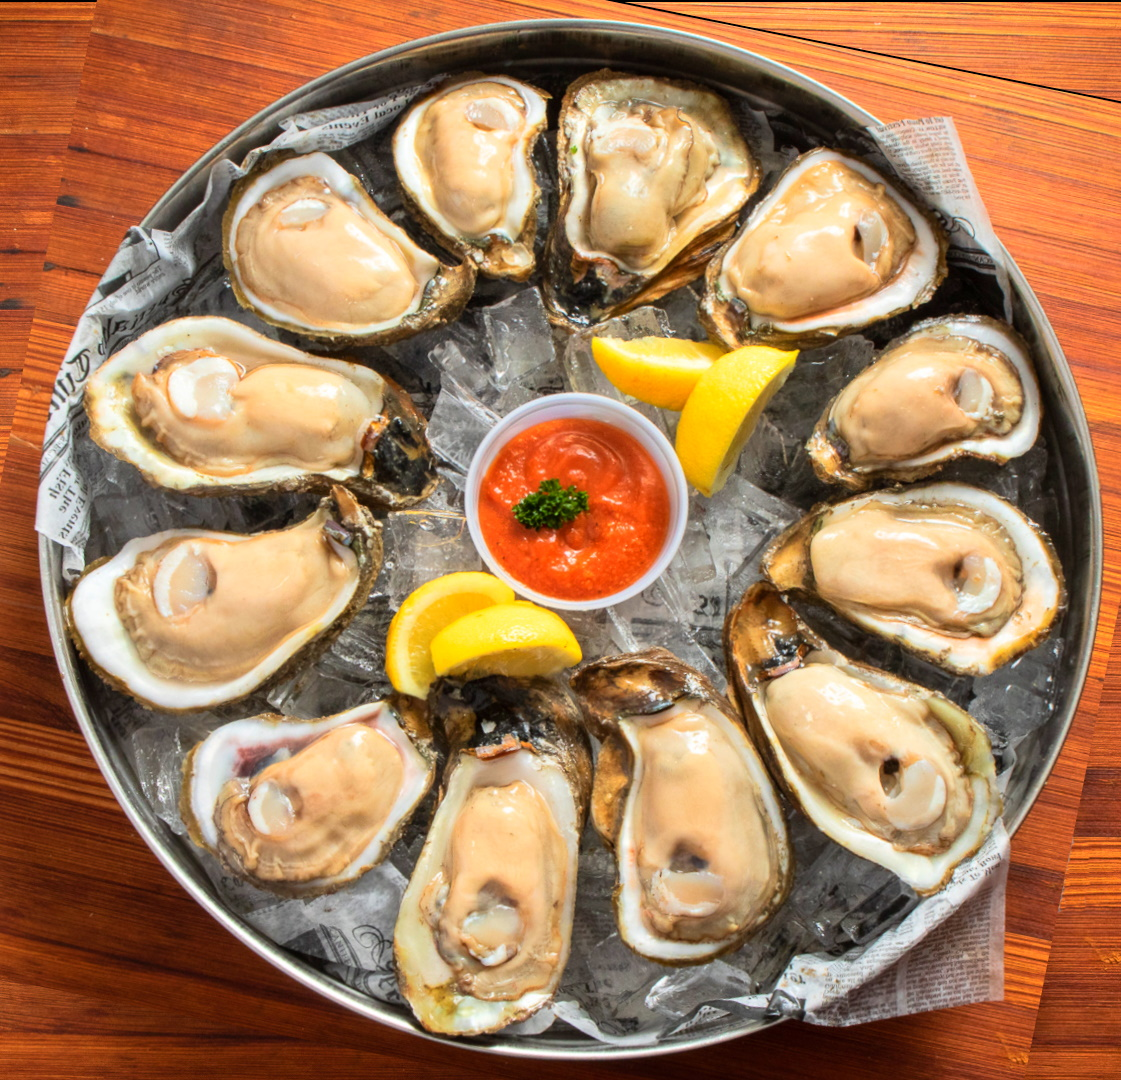 Oysters and other shellfish to treat ED and boost Testosterone